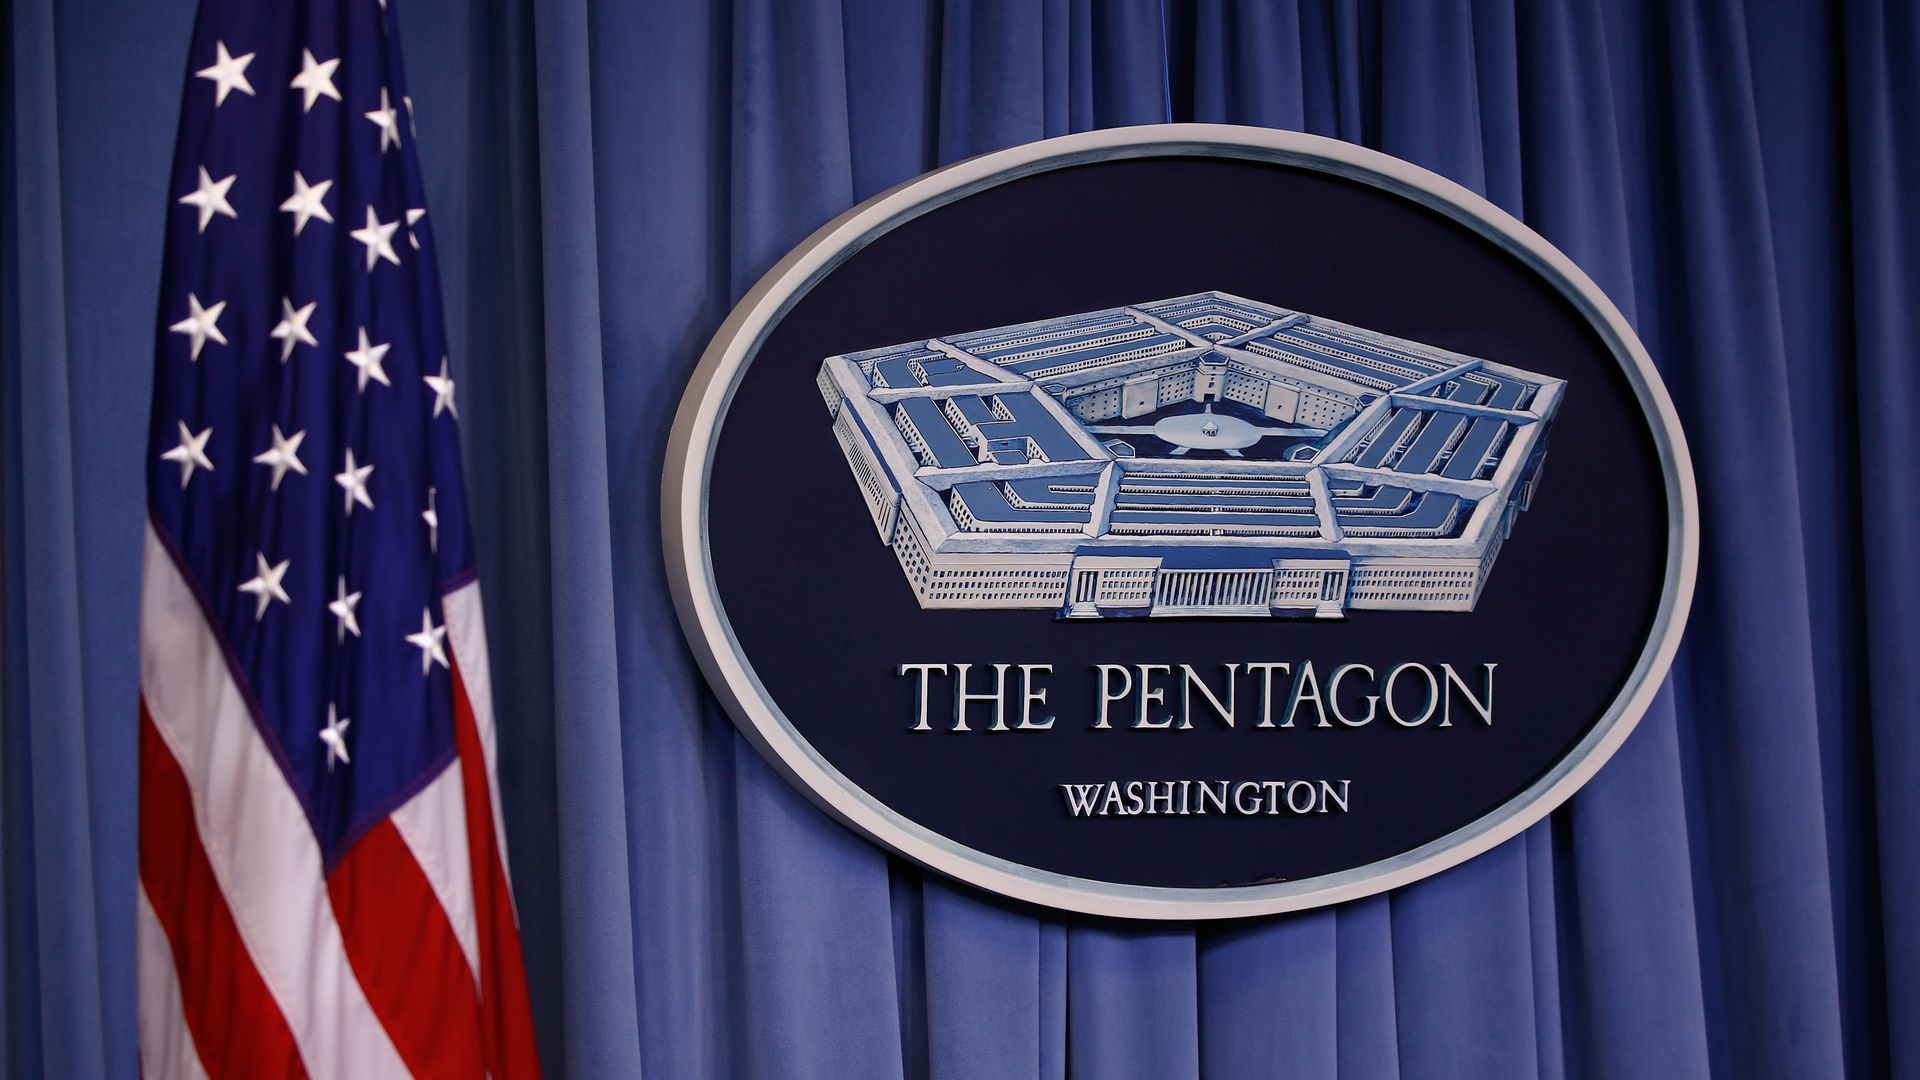 LA Times: More than $35 million in Pentagon aid yet to be sent to Ukraine